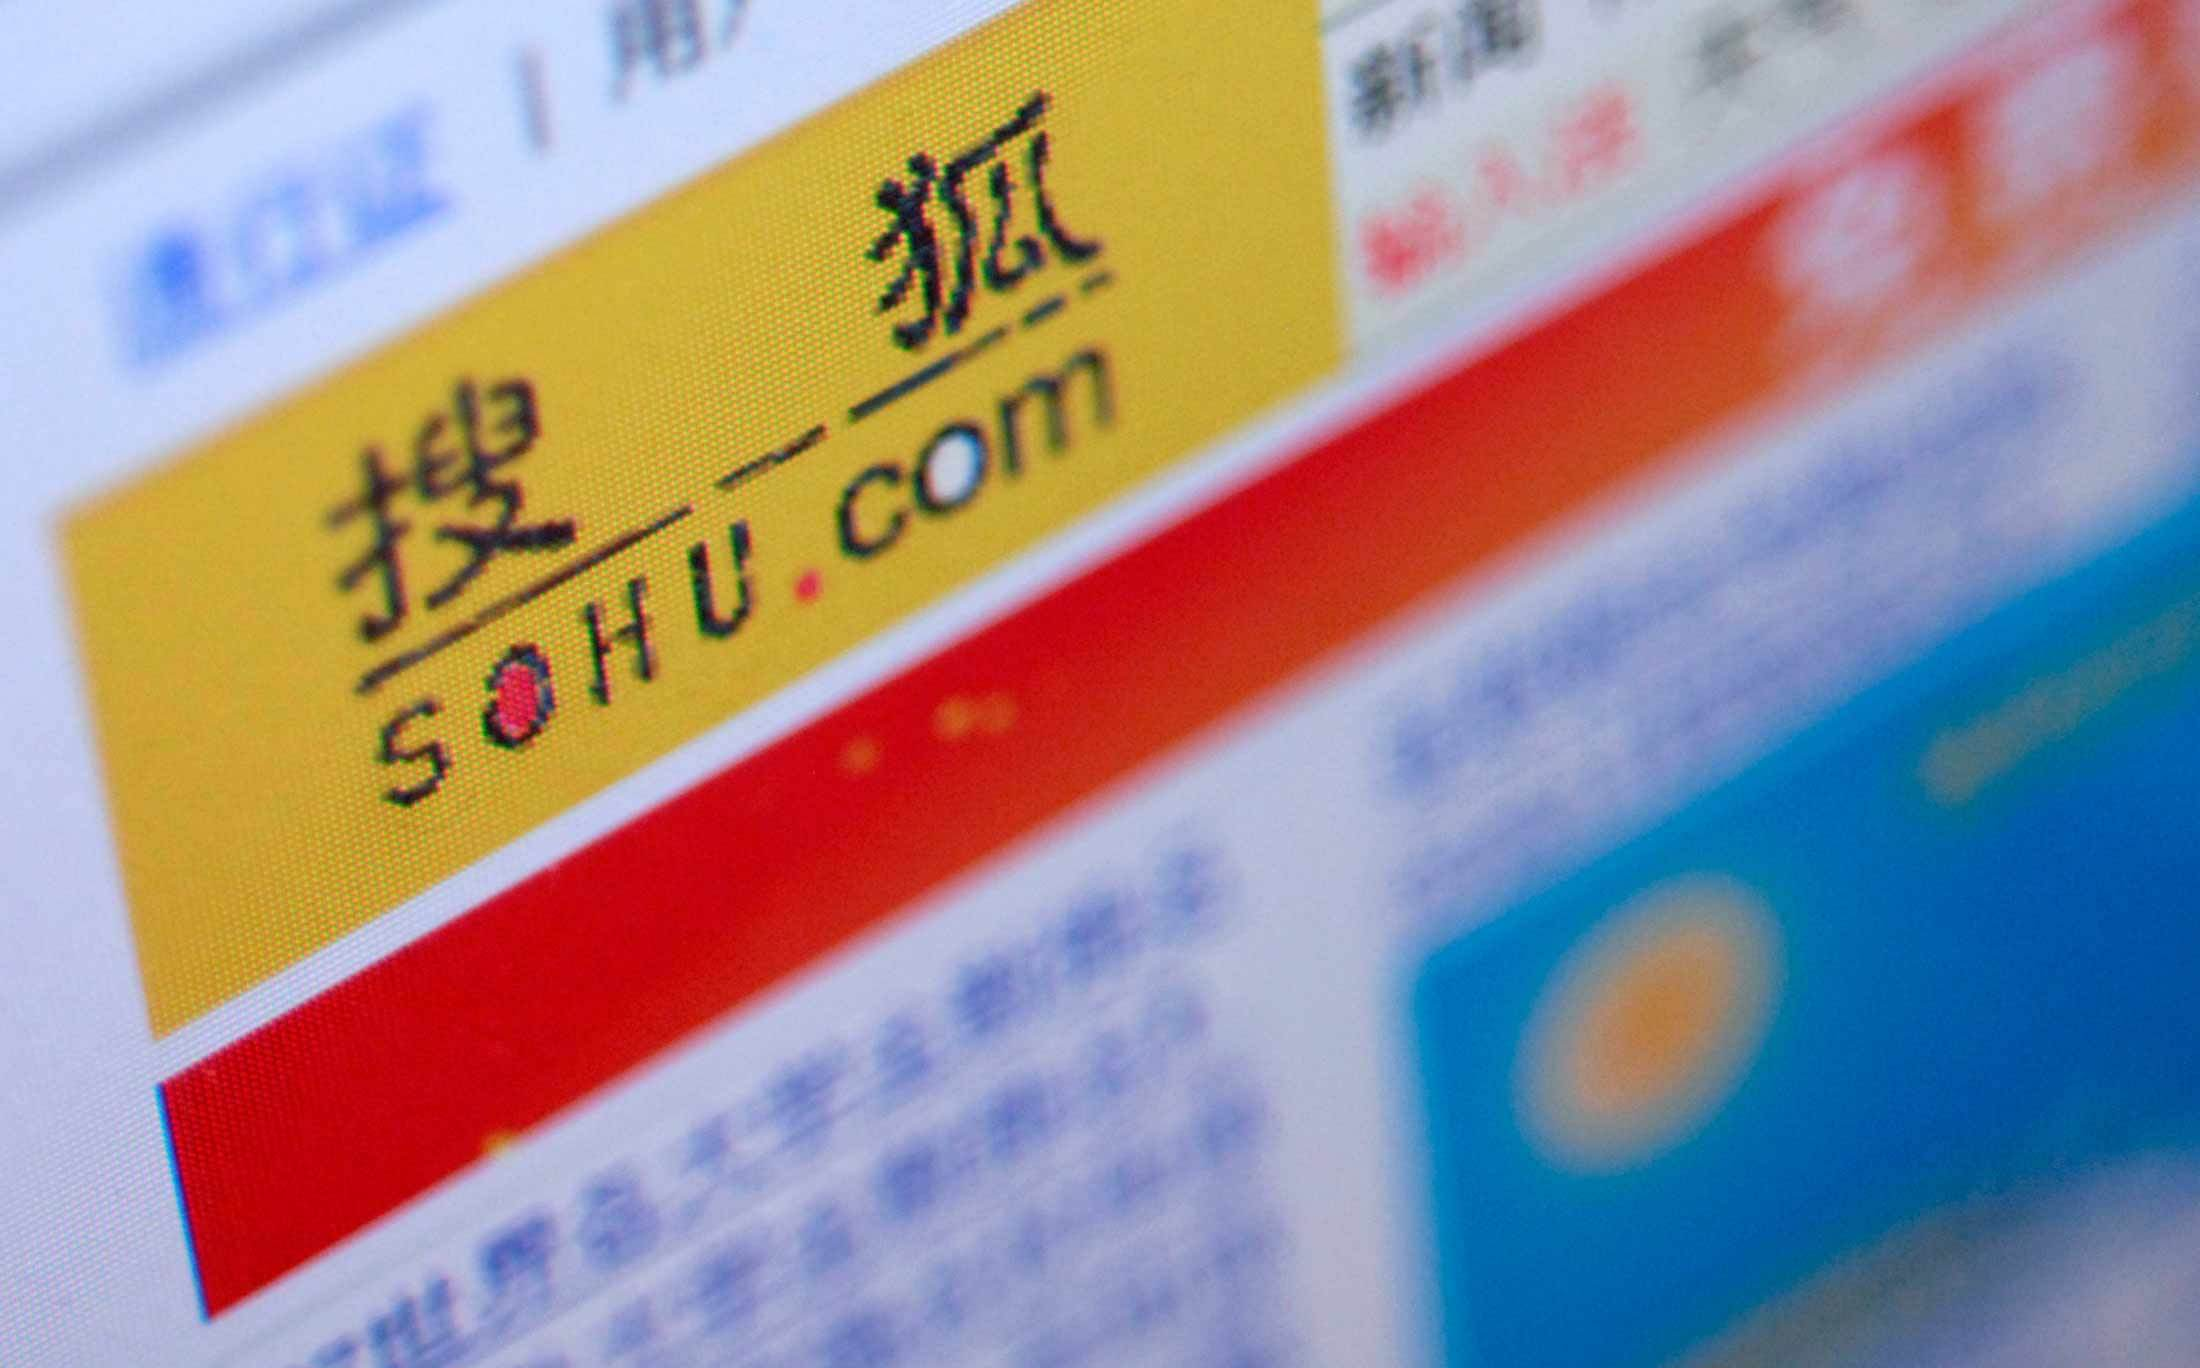 Sohu.com's Net Loss Leads to Stock Plunge